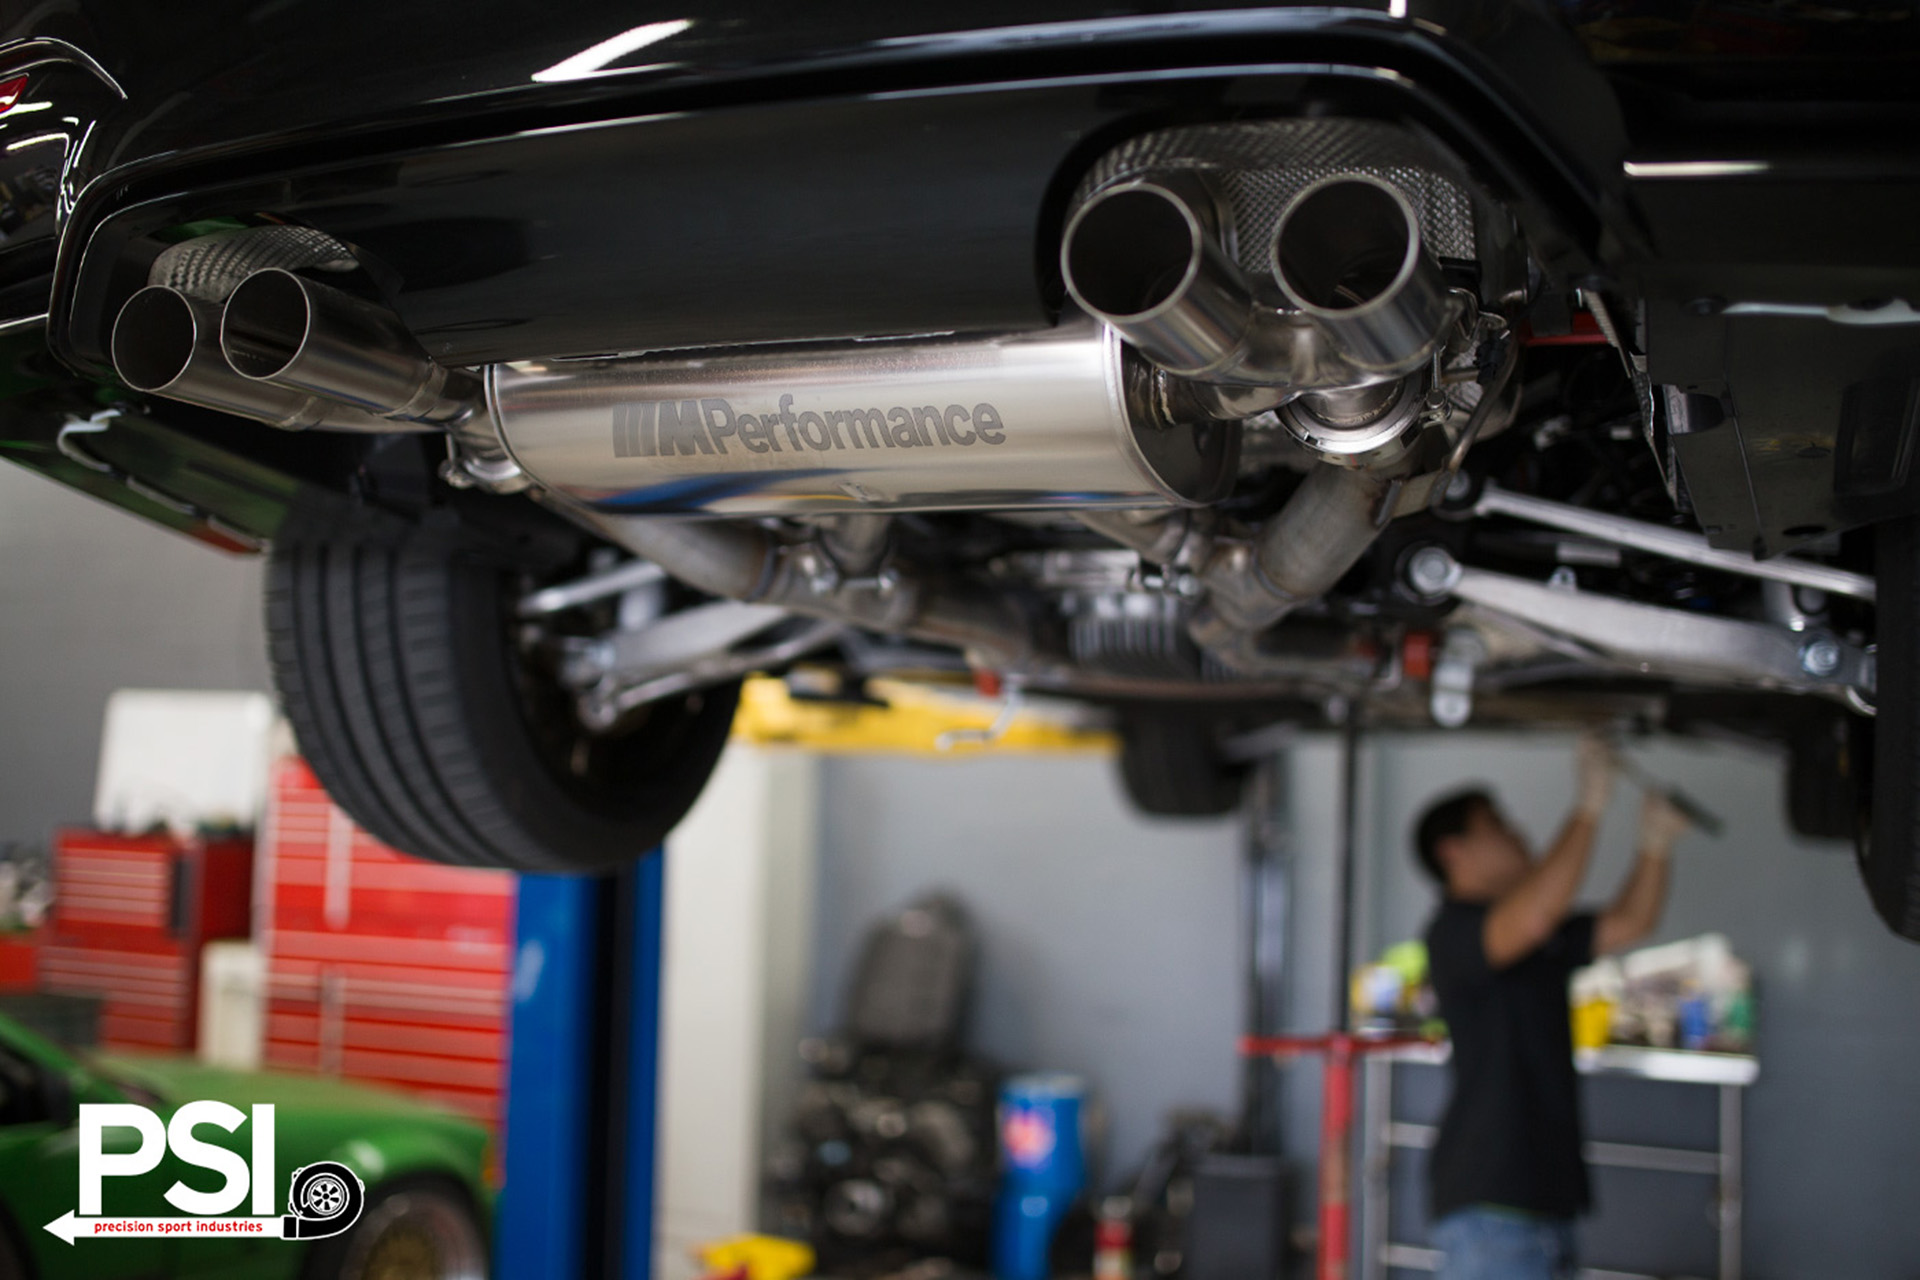 M4 Performance Exhaust Bmw Performance Exhaust System Installed By Psi